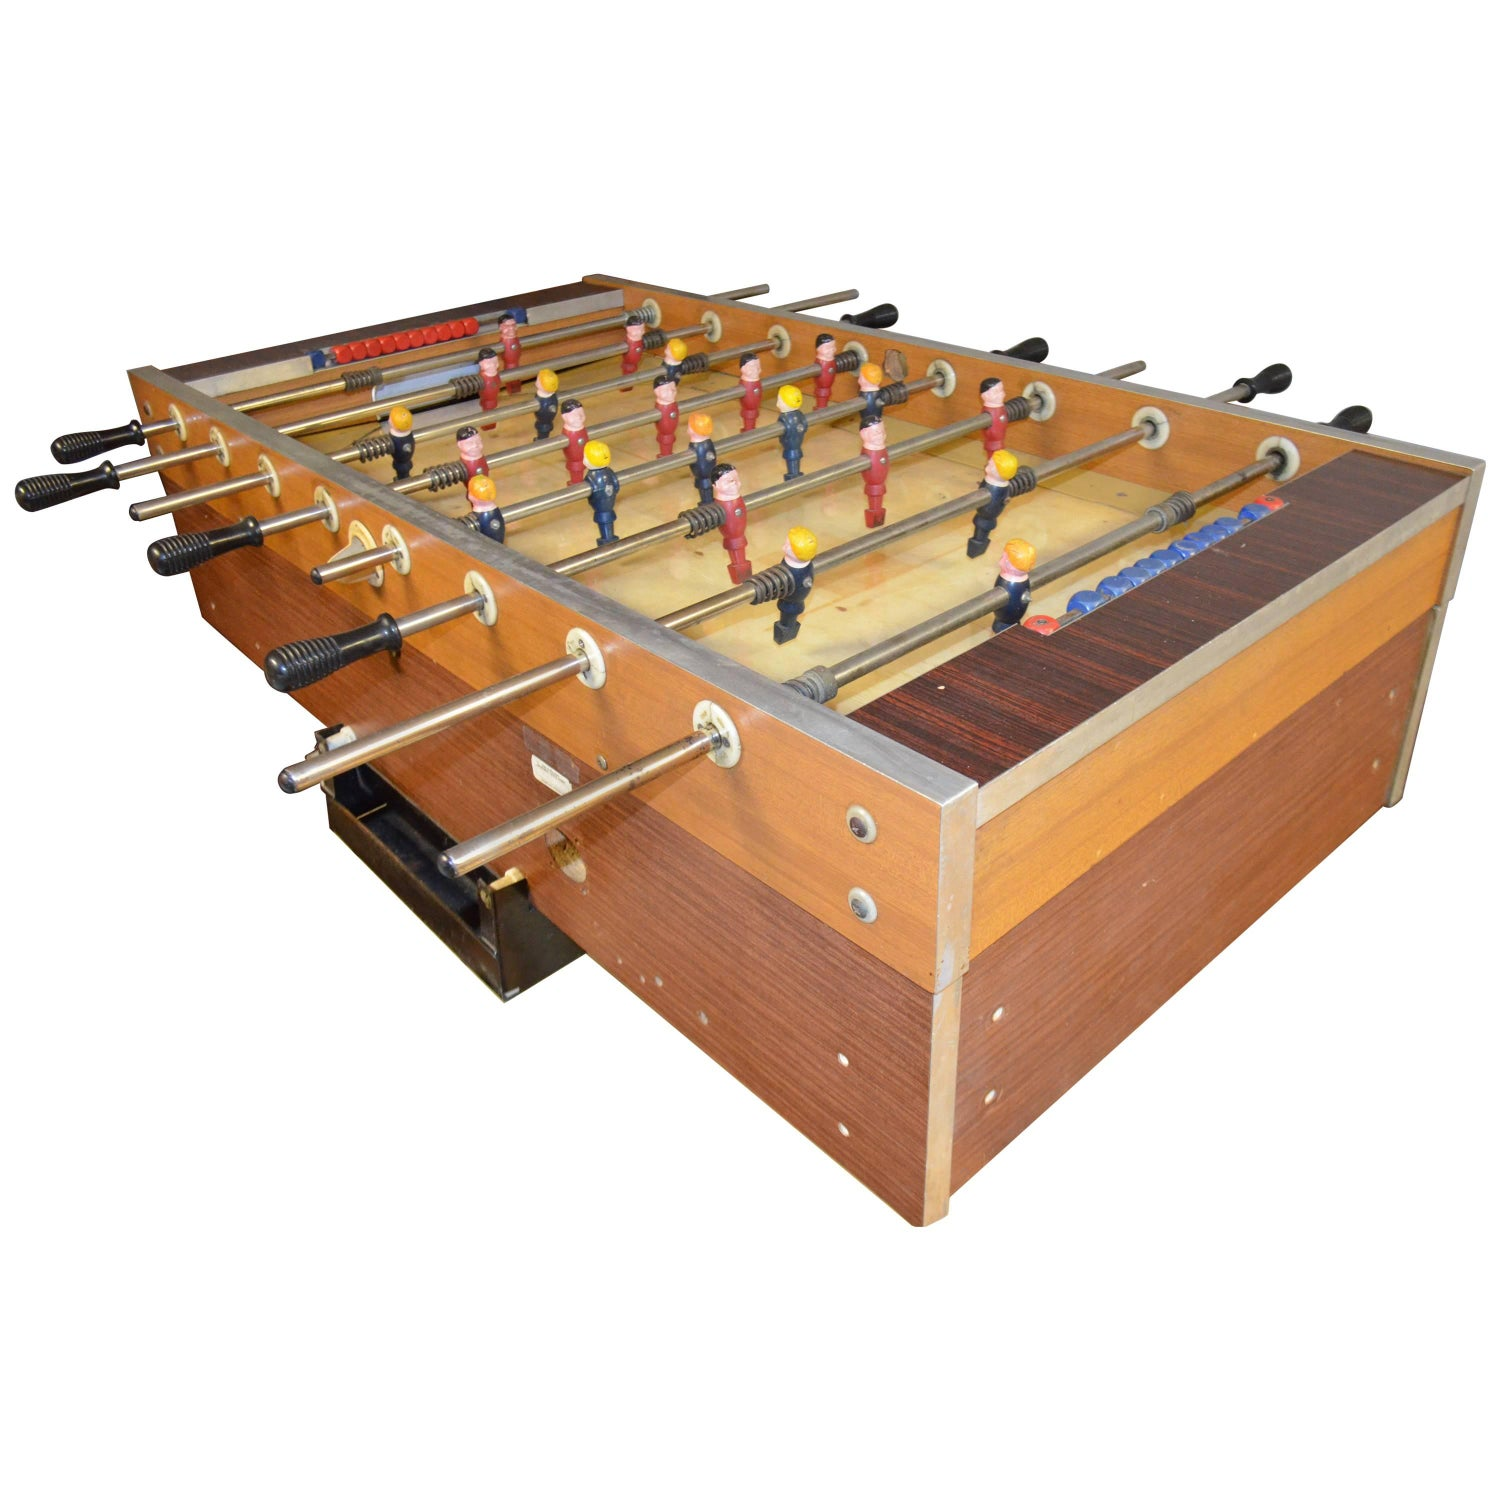 90° Minuto Foosball Table by Teckell in Walnut For Sale at 1stdibs